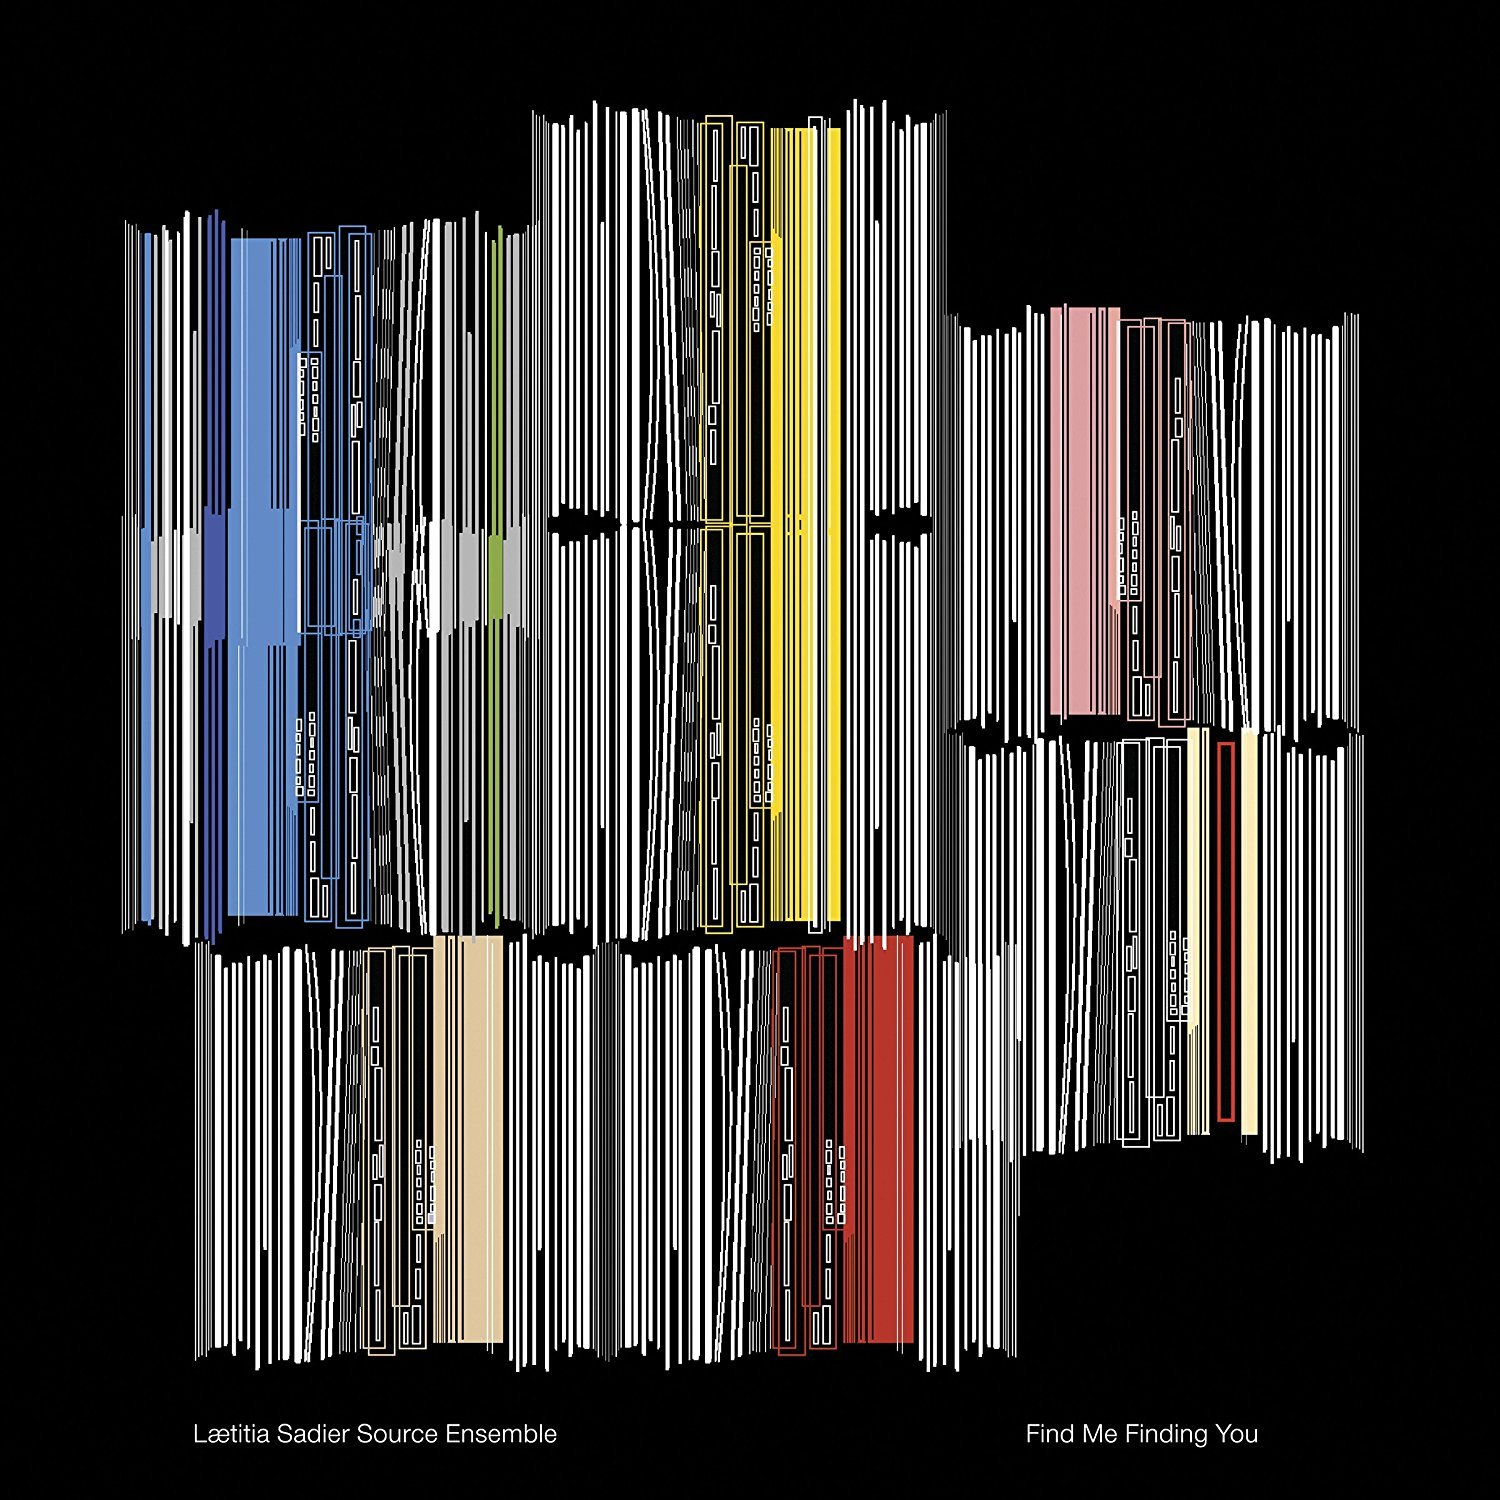 Finding LAETITIA SADIER SOURCE ENSEMBLE